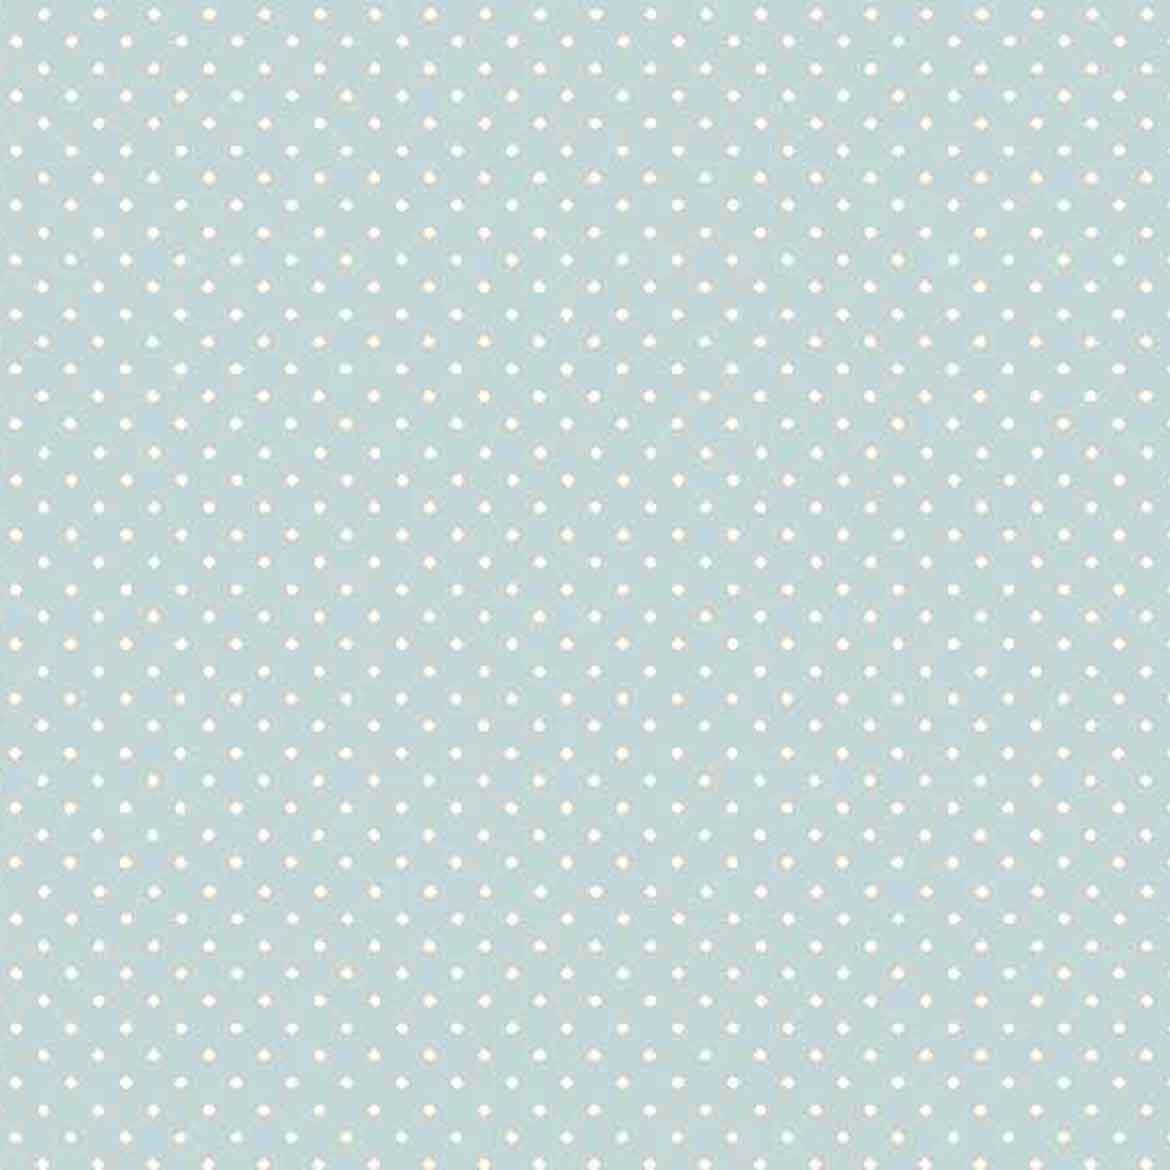 Baby Blue Spot Fabric by Makower 830/B2 from their Spot on Basics Collection, White on Pale Blue Small Polka Dot Fabric